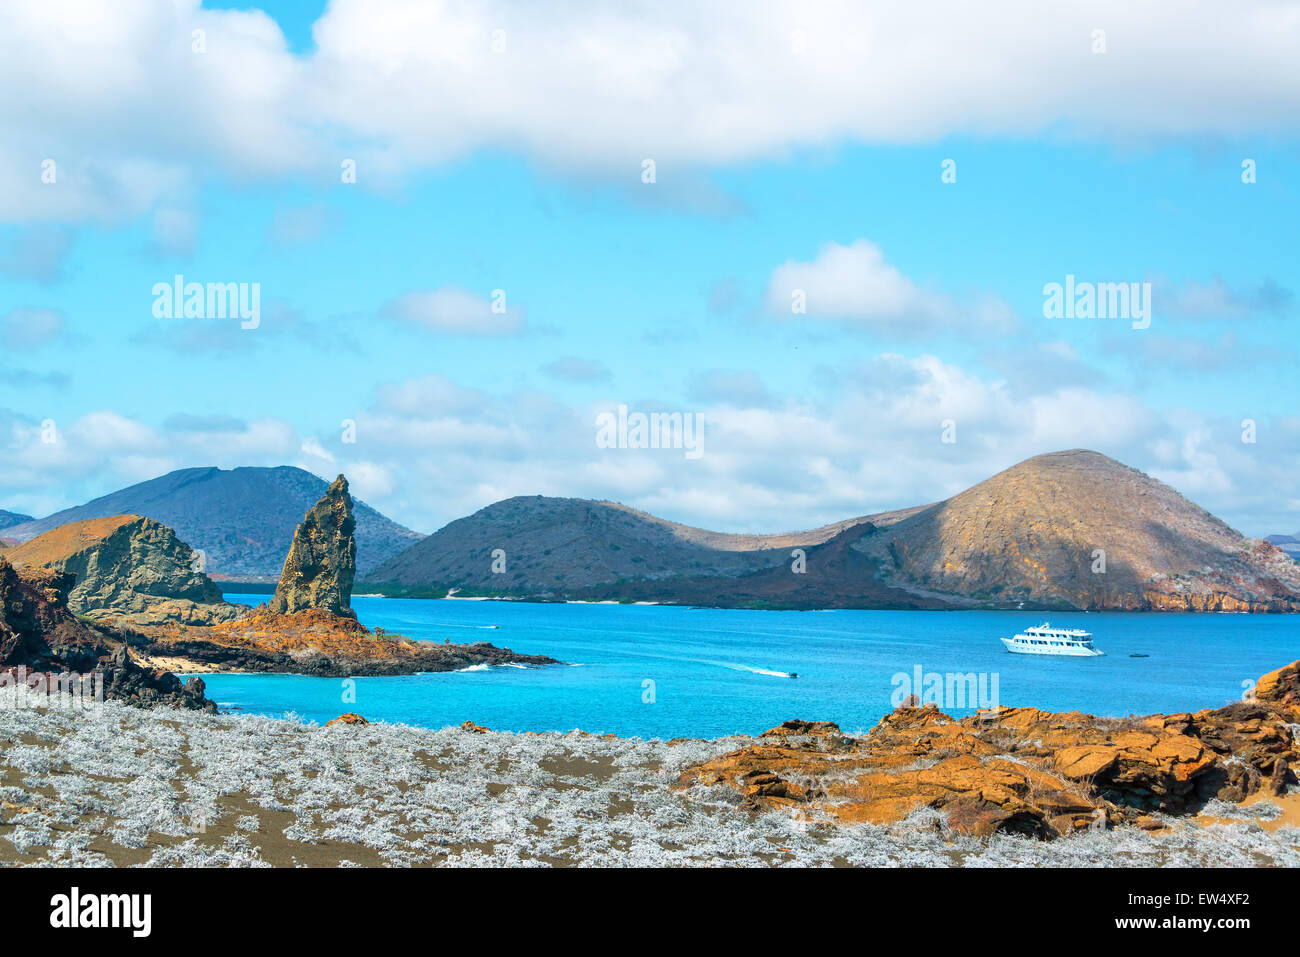 View of Pinnacle Rock and Sullivan Bay in the Galapagos Islands - Stock Image